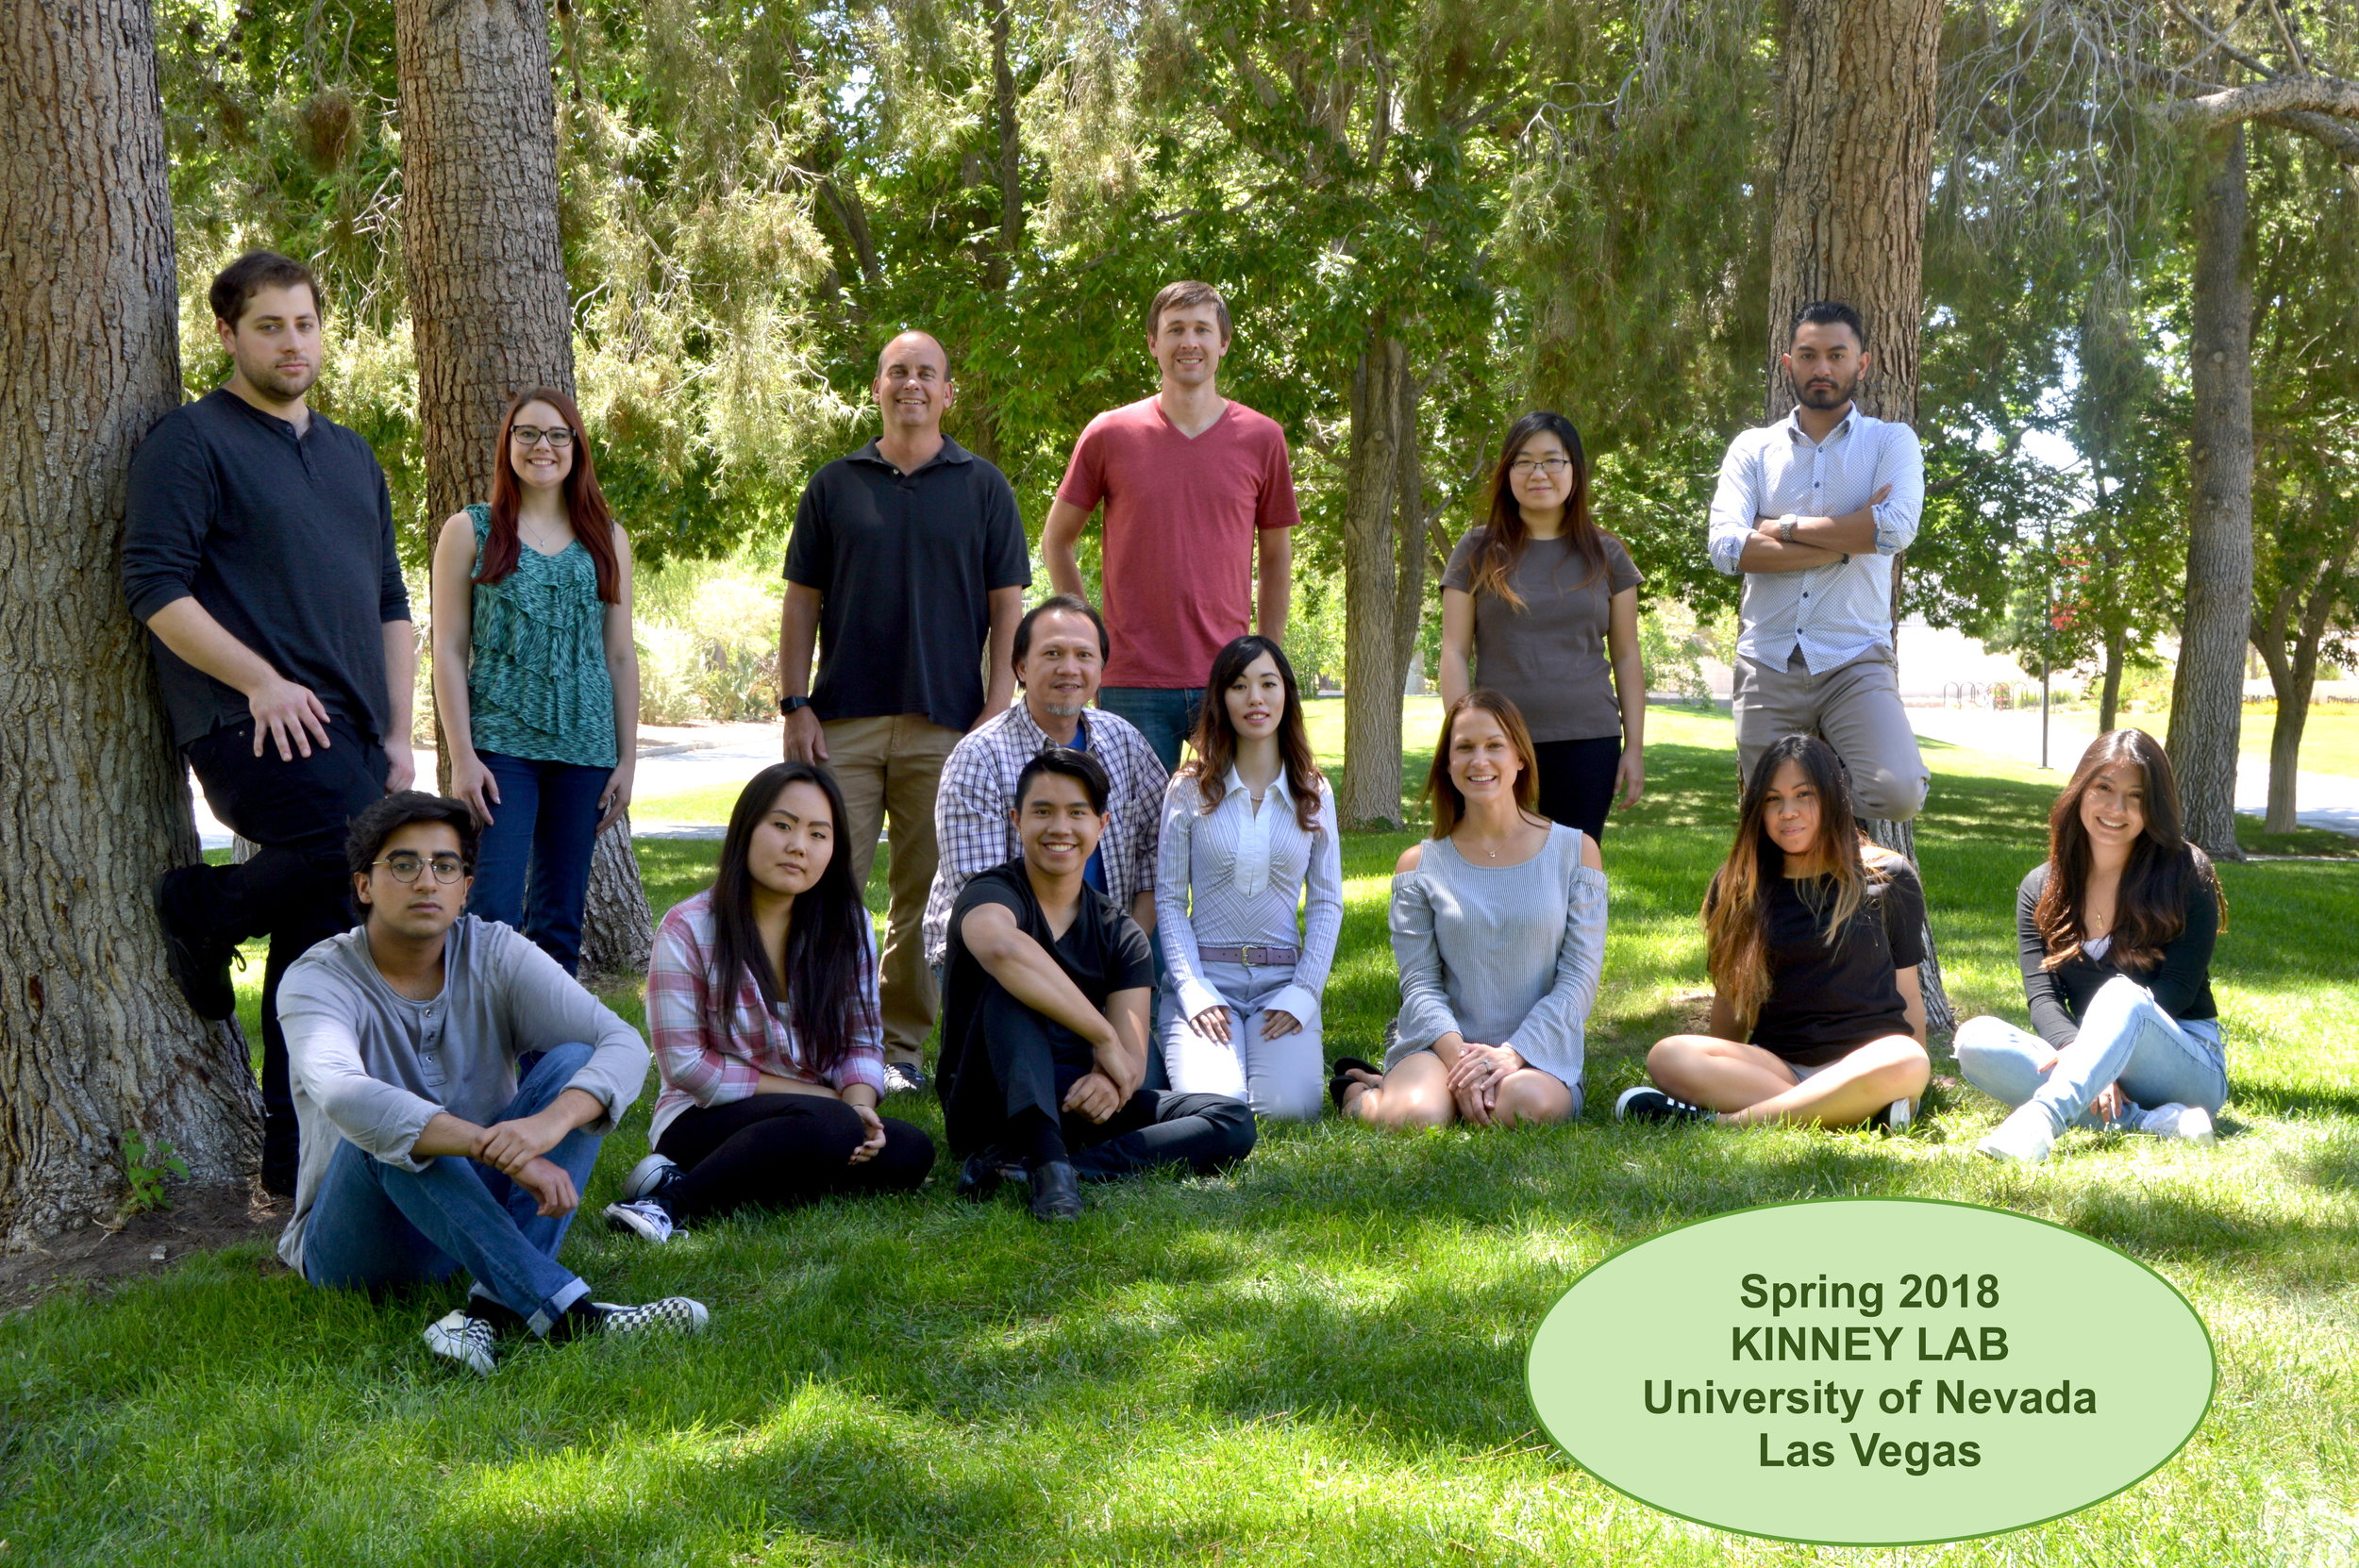 Kinney Lab 2018 Website Photo.JPG